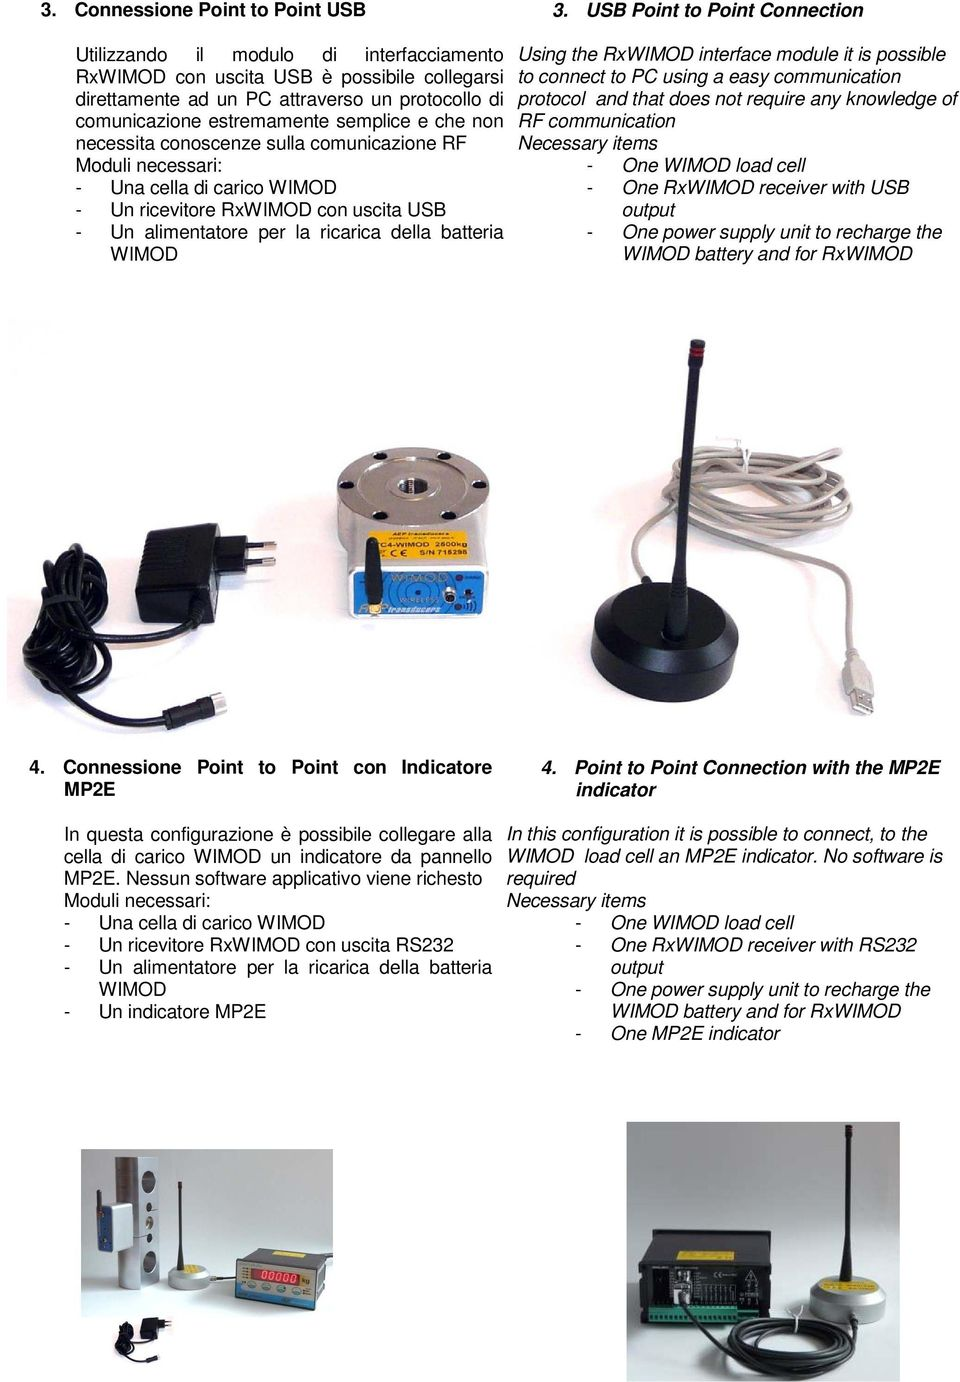 e che non necessita conoscenze sulla comunicazione RF - Una cella di carico - Un ricevitore Rx con uscita USB Using the Rx interface module it is possible to connect to PC using a easy communication